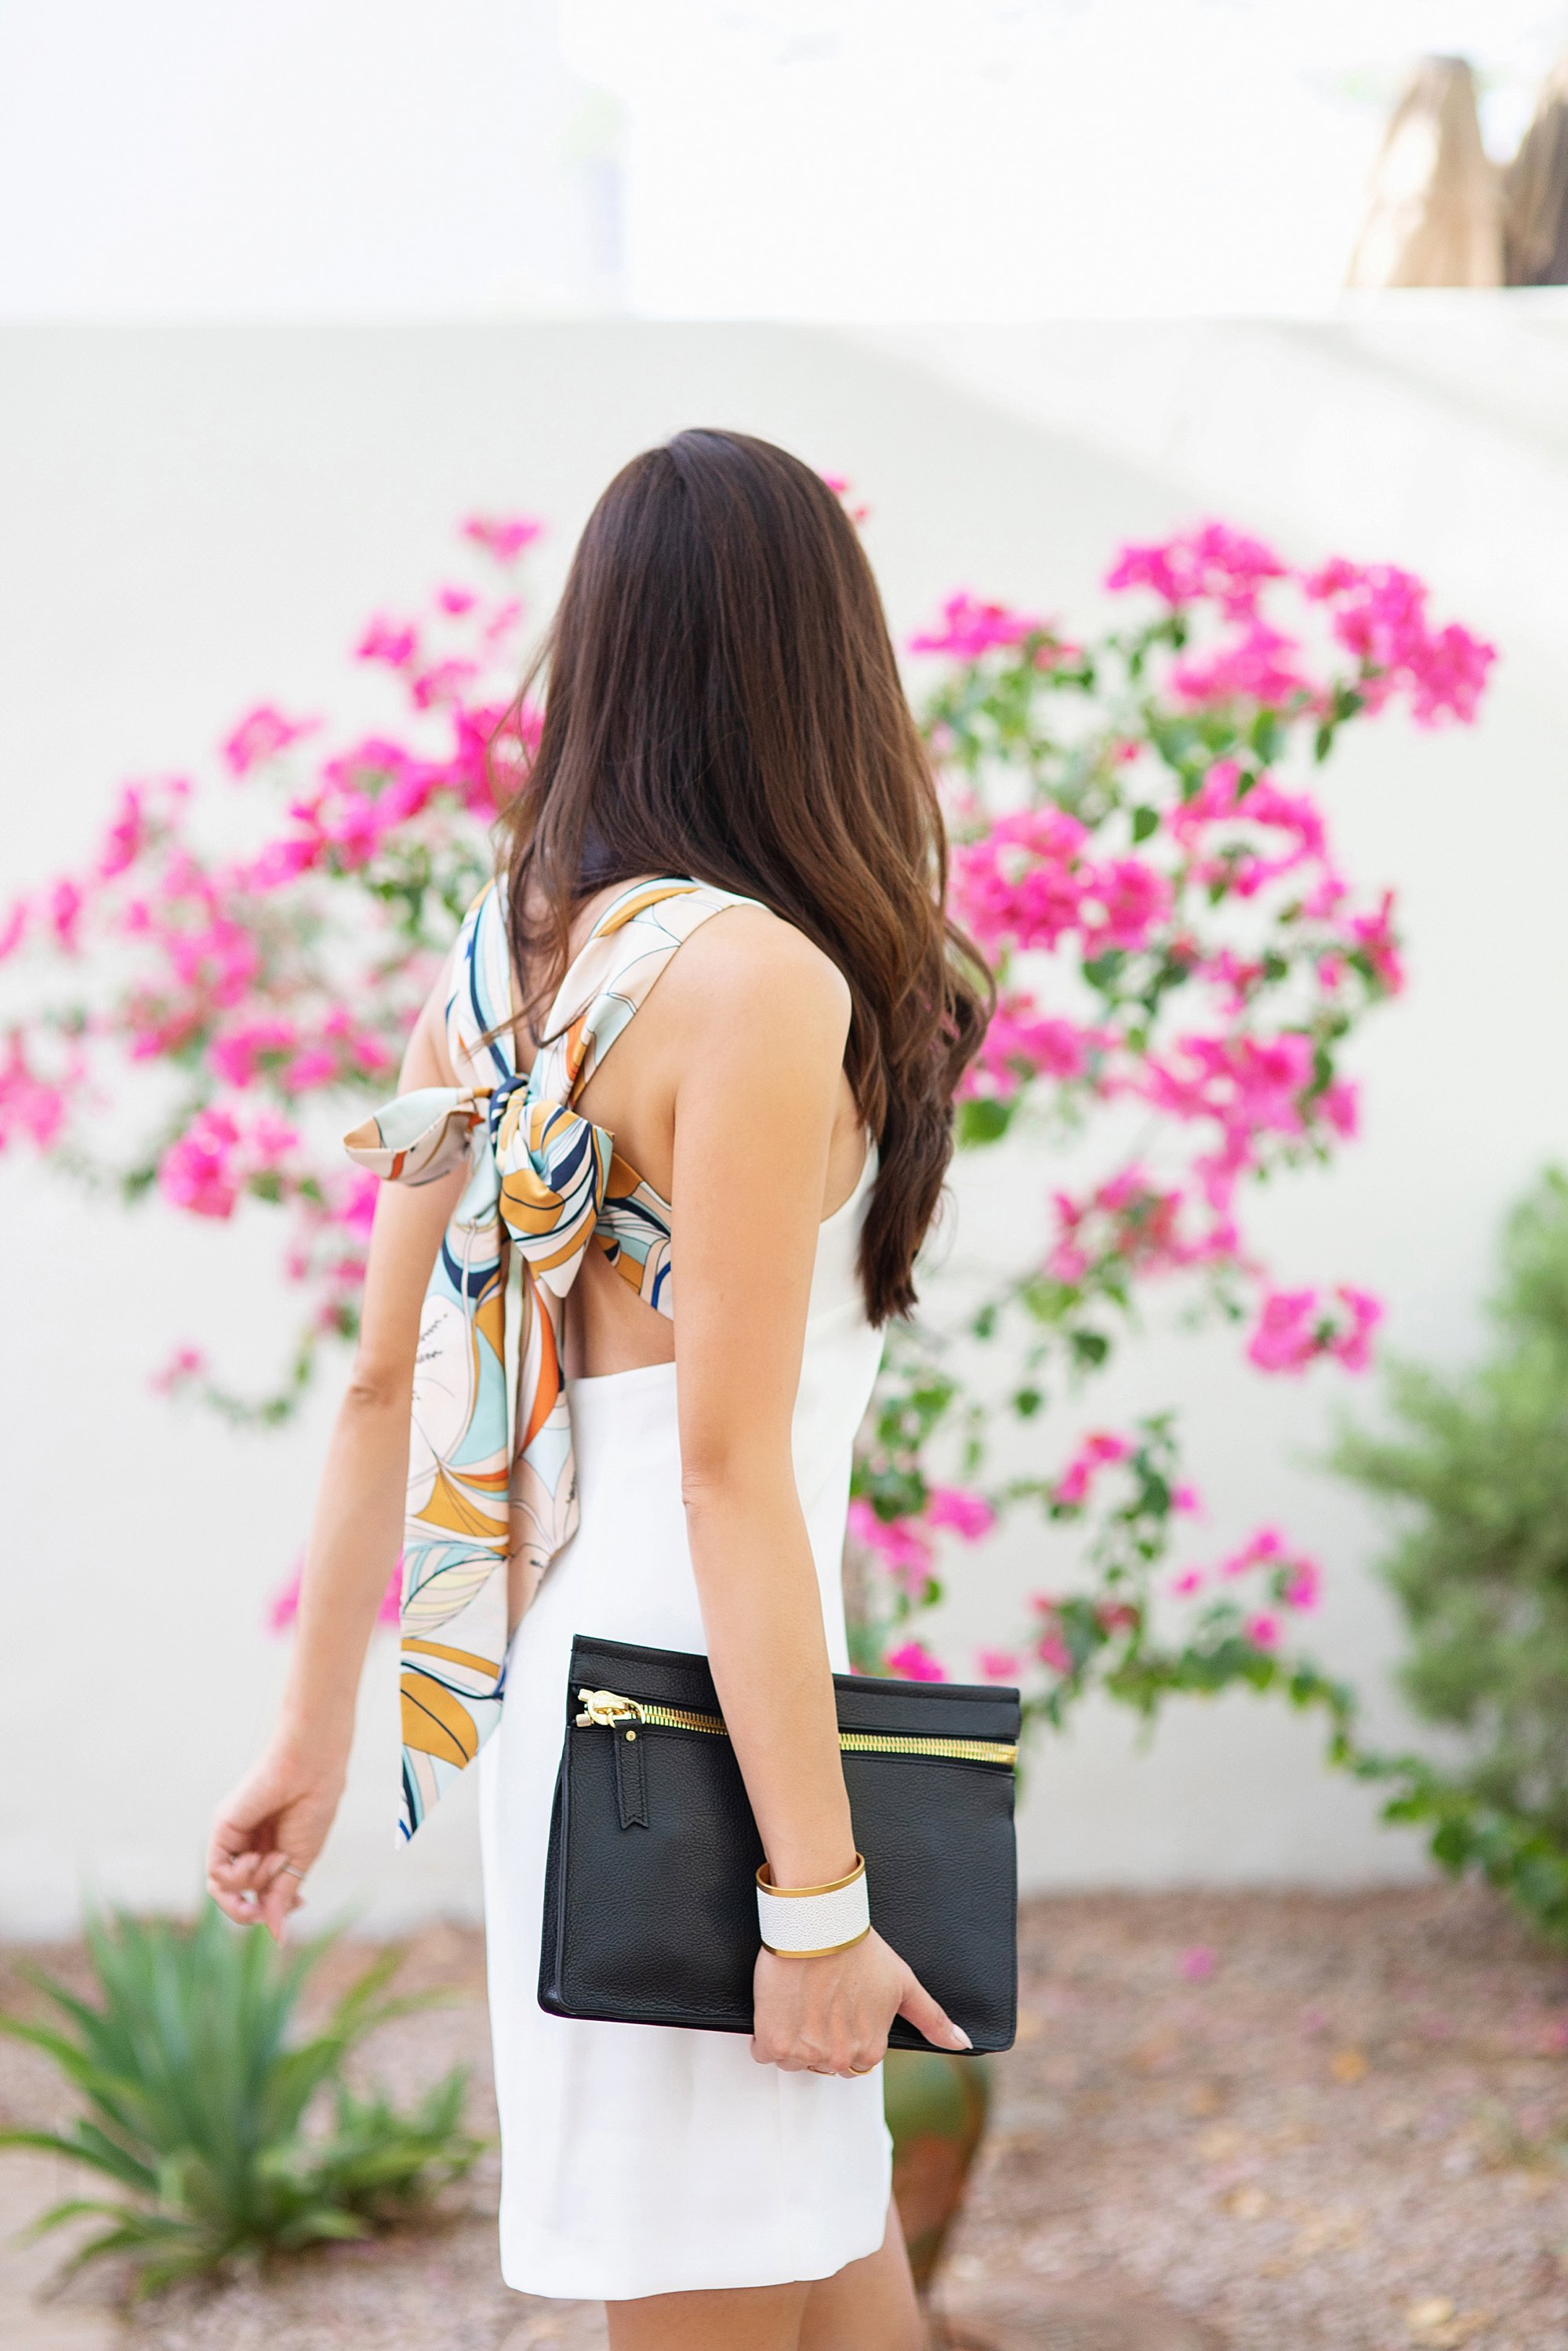 back details Mango Gugi2 scarf dress on blogger Diana Elizabeth in Phoenix, Arizona. Scarf dress paired a black clutch by India Hicks and white leather brass cuff and tortoise acrylic hoops at heard museum